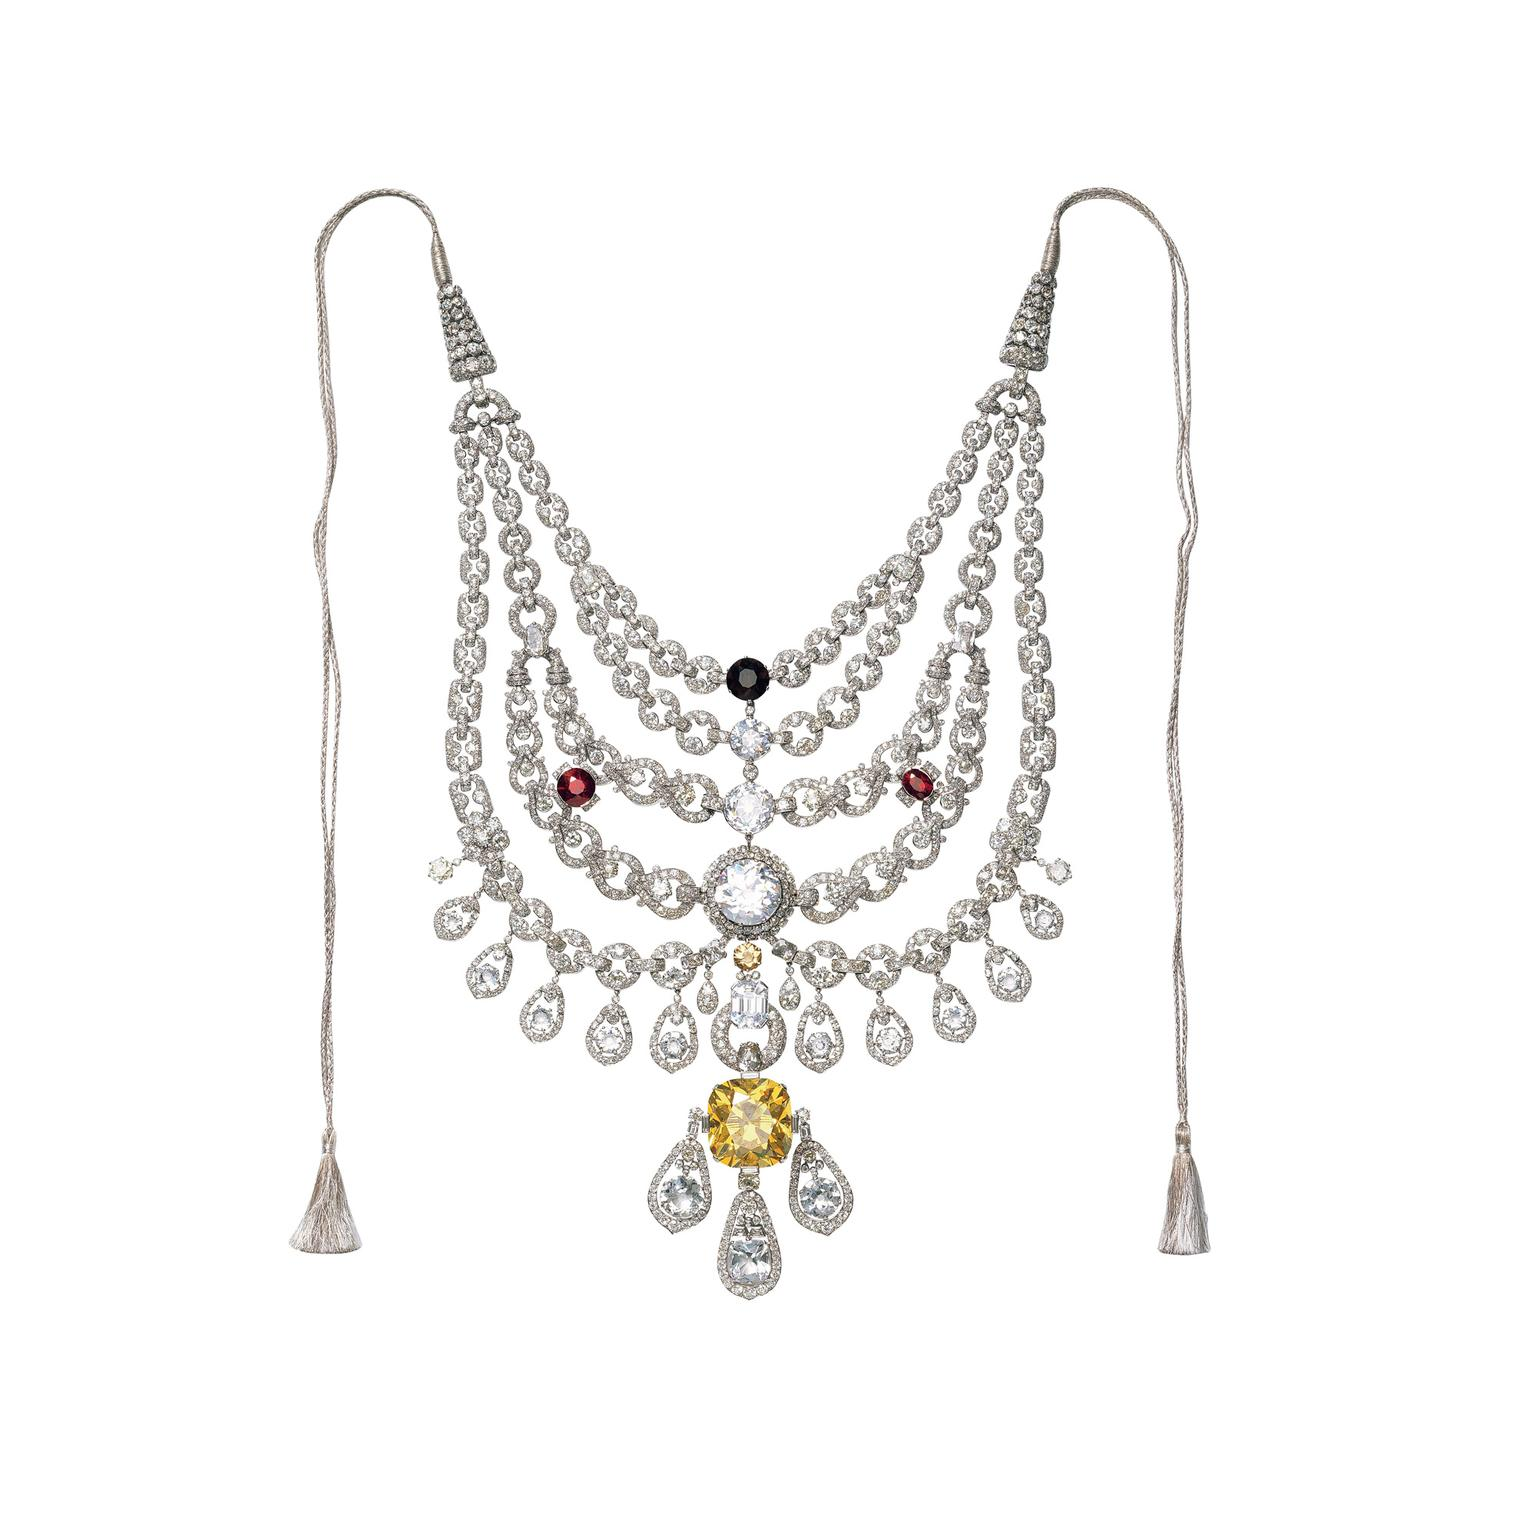 Cartier necklace of the Maharaja of Patiala